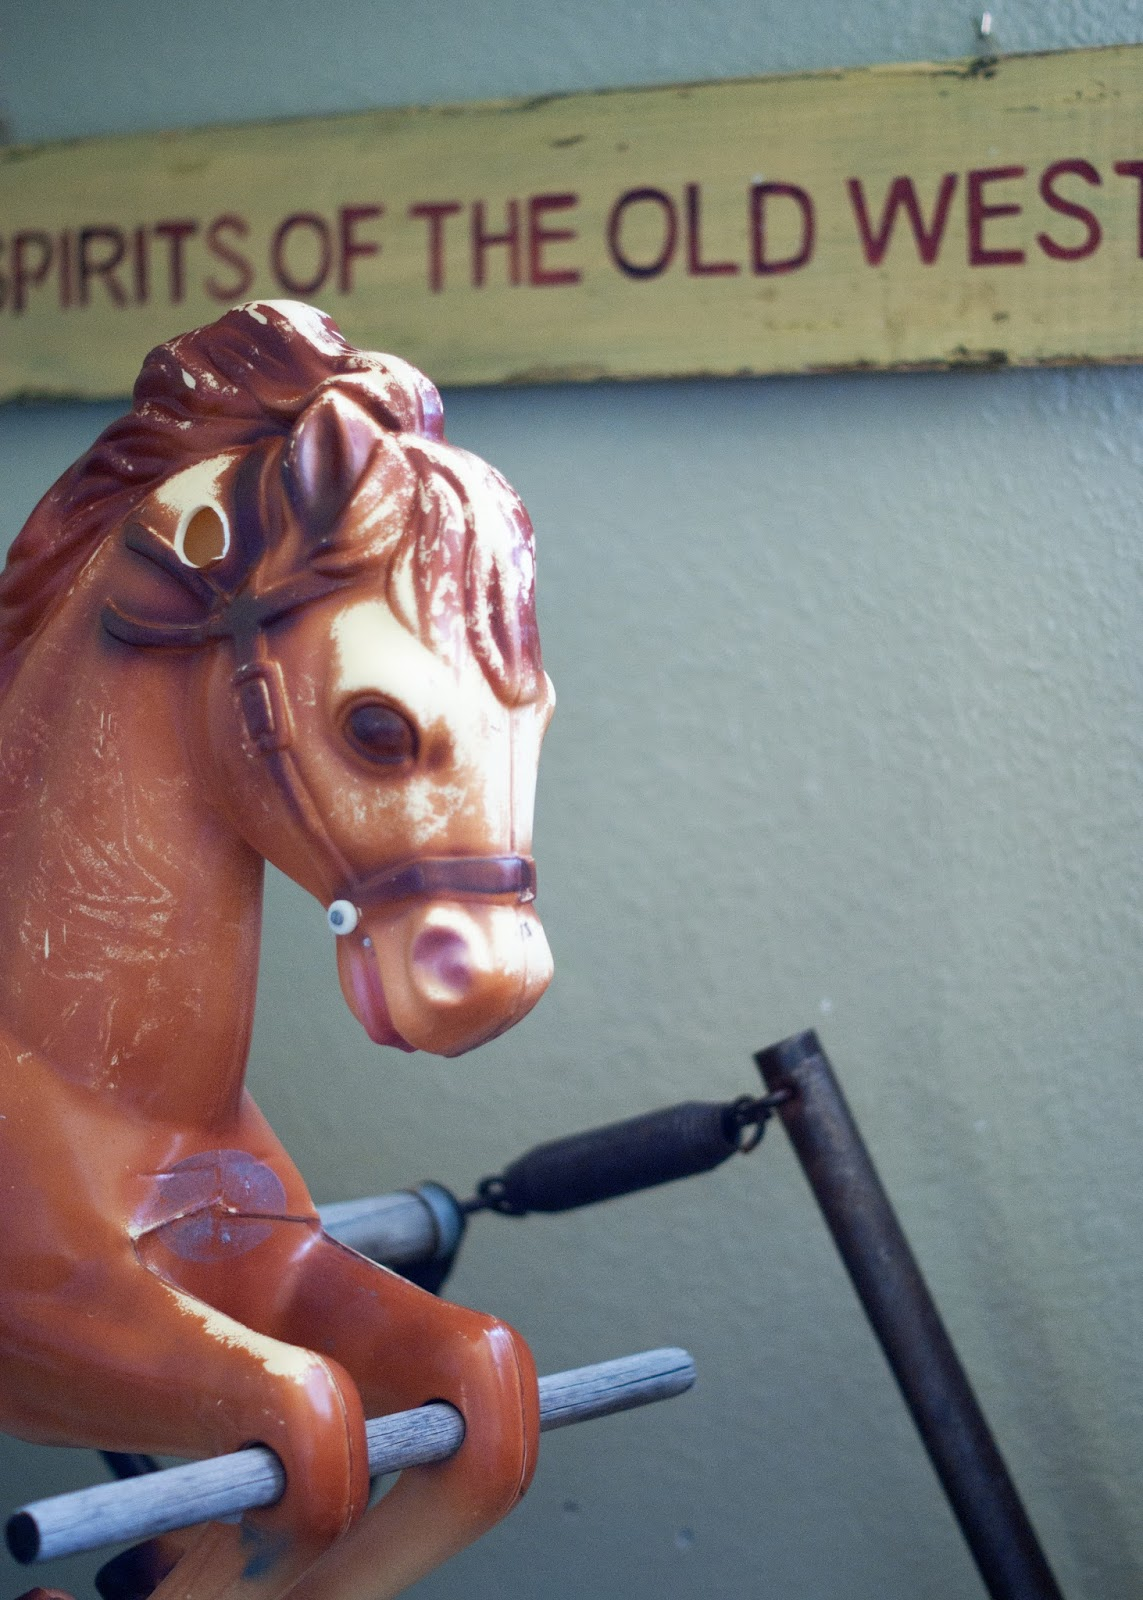 Vintage rocking horse and western sign